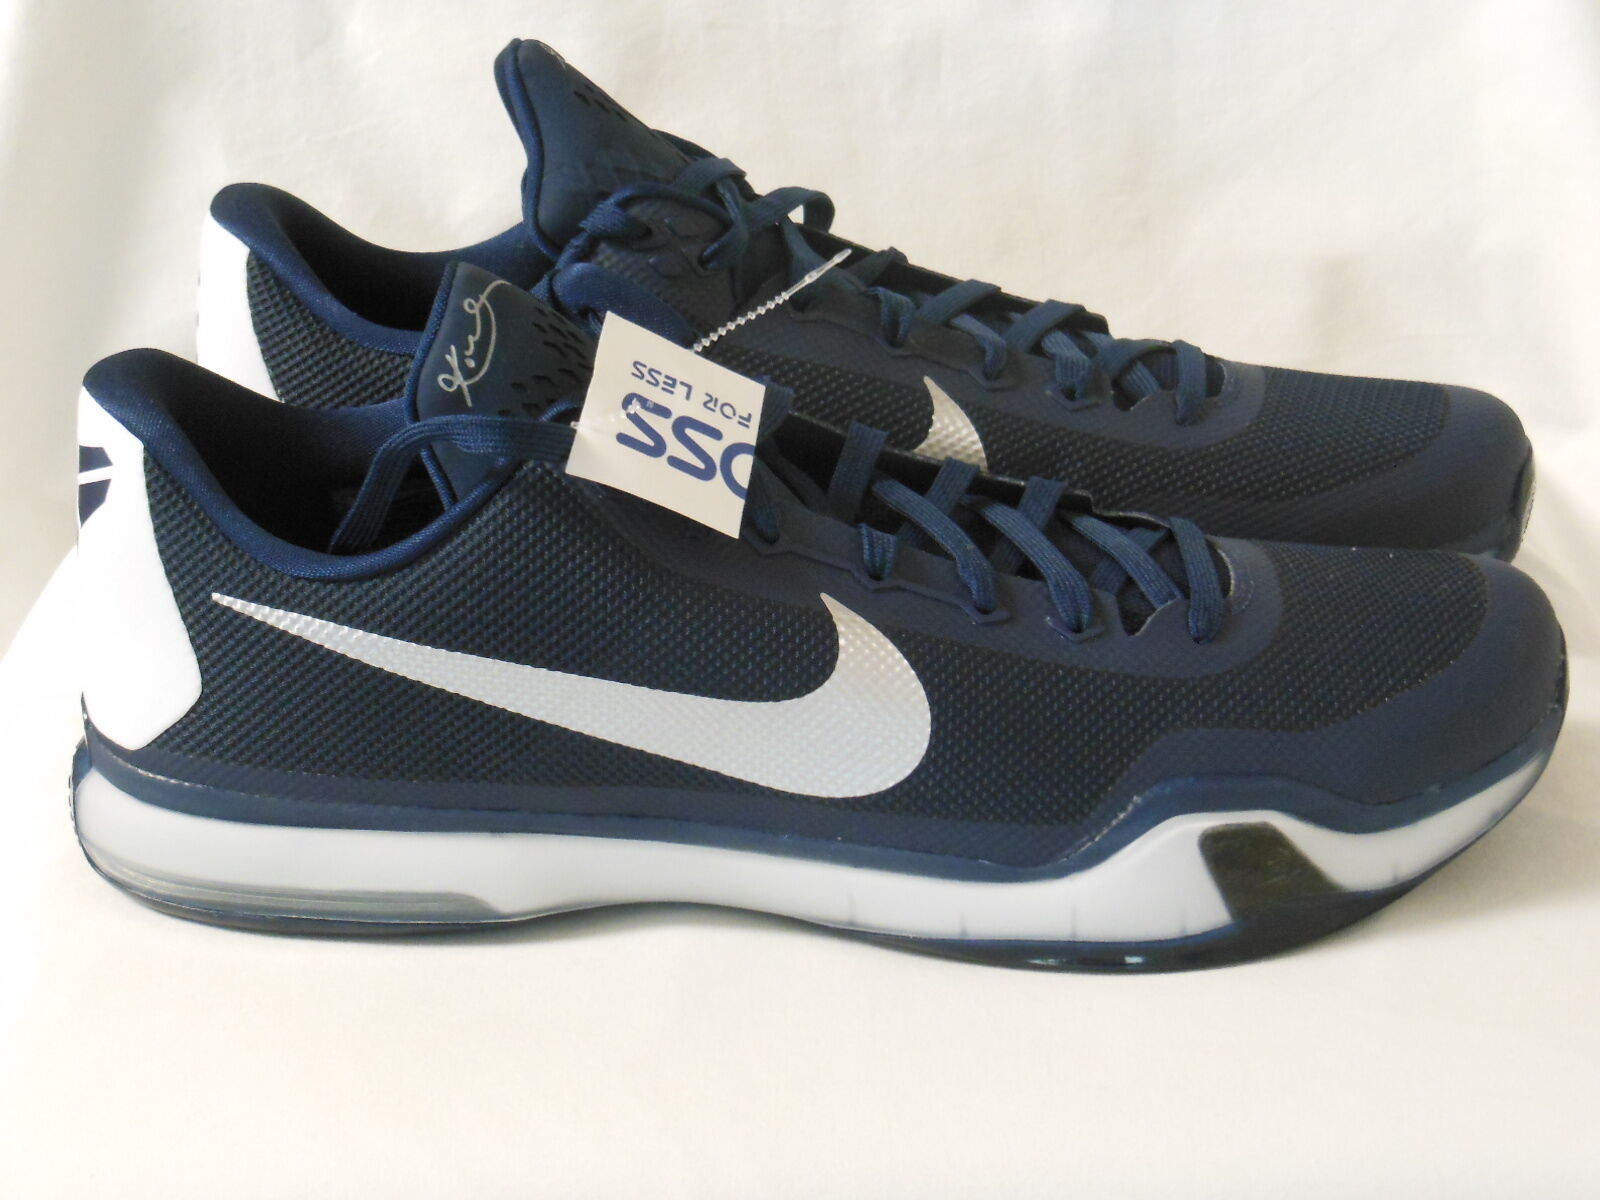 official photos 8c842 bde16 ... closeout kobe x tb cómodo midnight navy elite nike 813030 401 cómodo tb  casual salvaje de4e6a